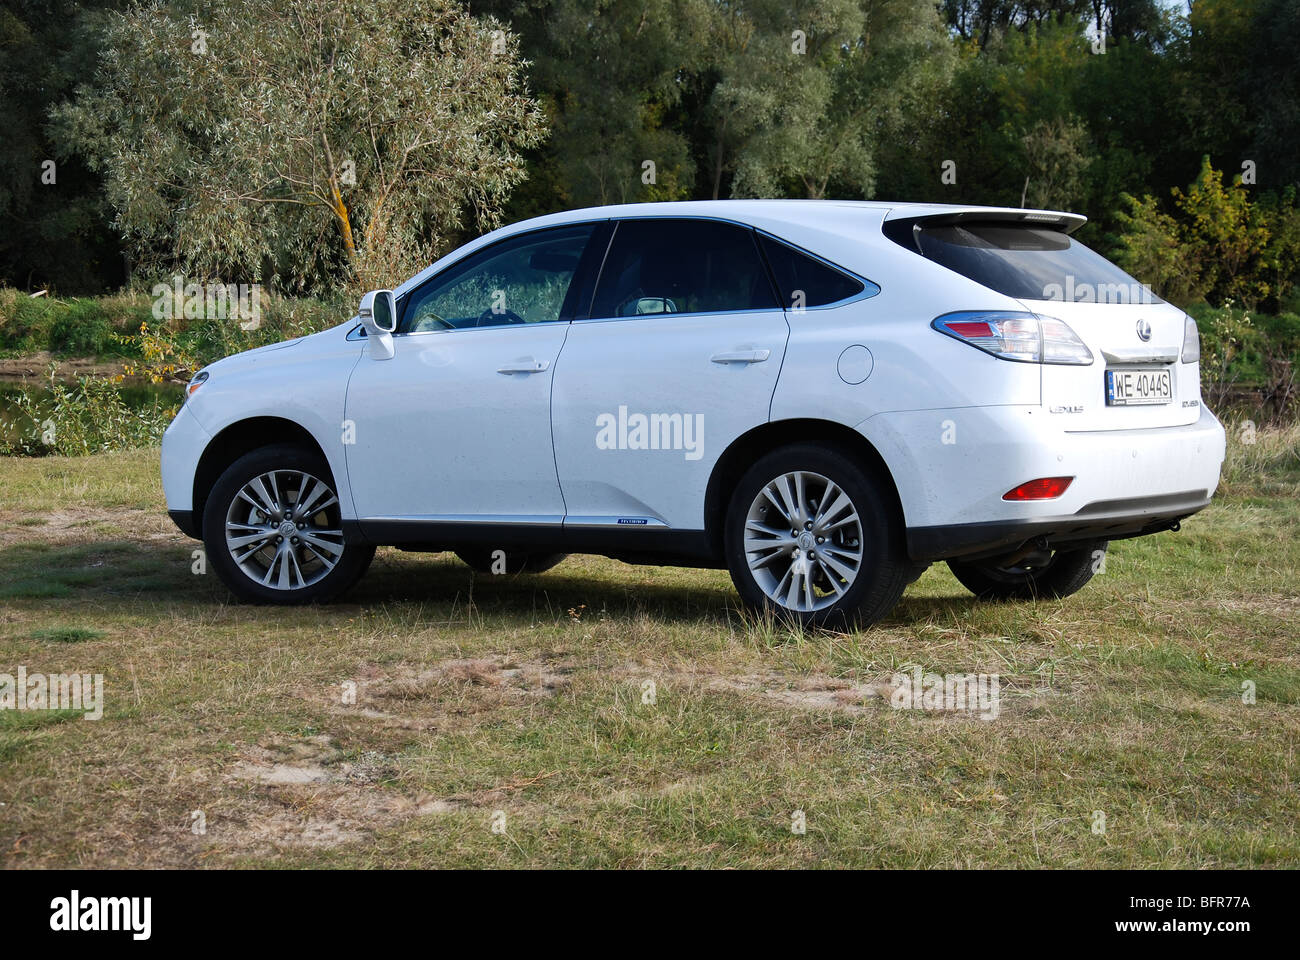 lexus rx 450h hybrid suv 2009 white five doors 5d stock photo royalty free image. Black Bedroom Furniture Sets. Home Design Ideas